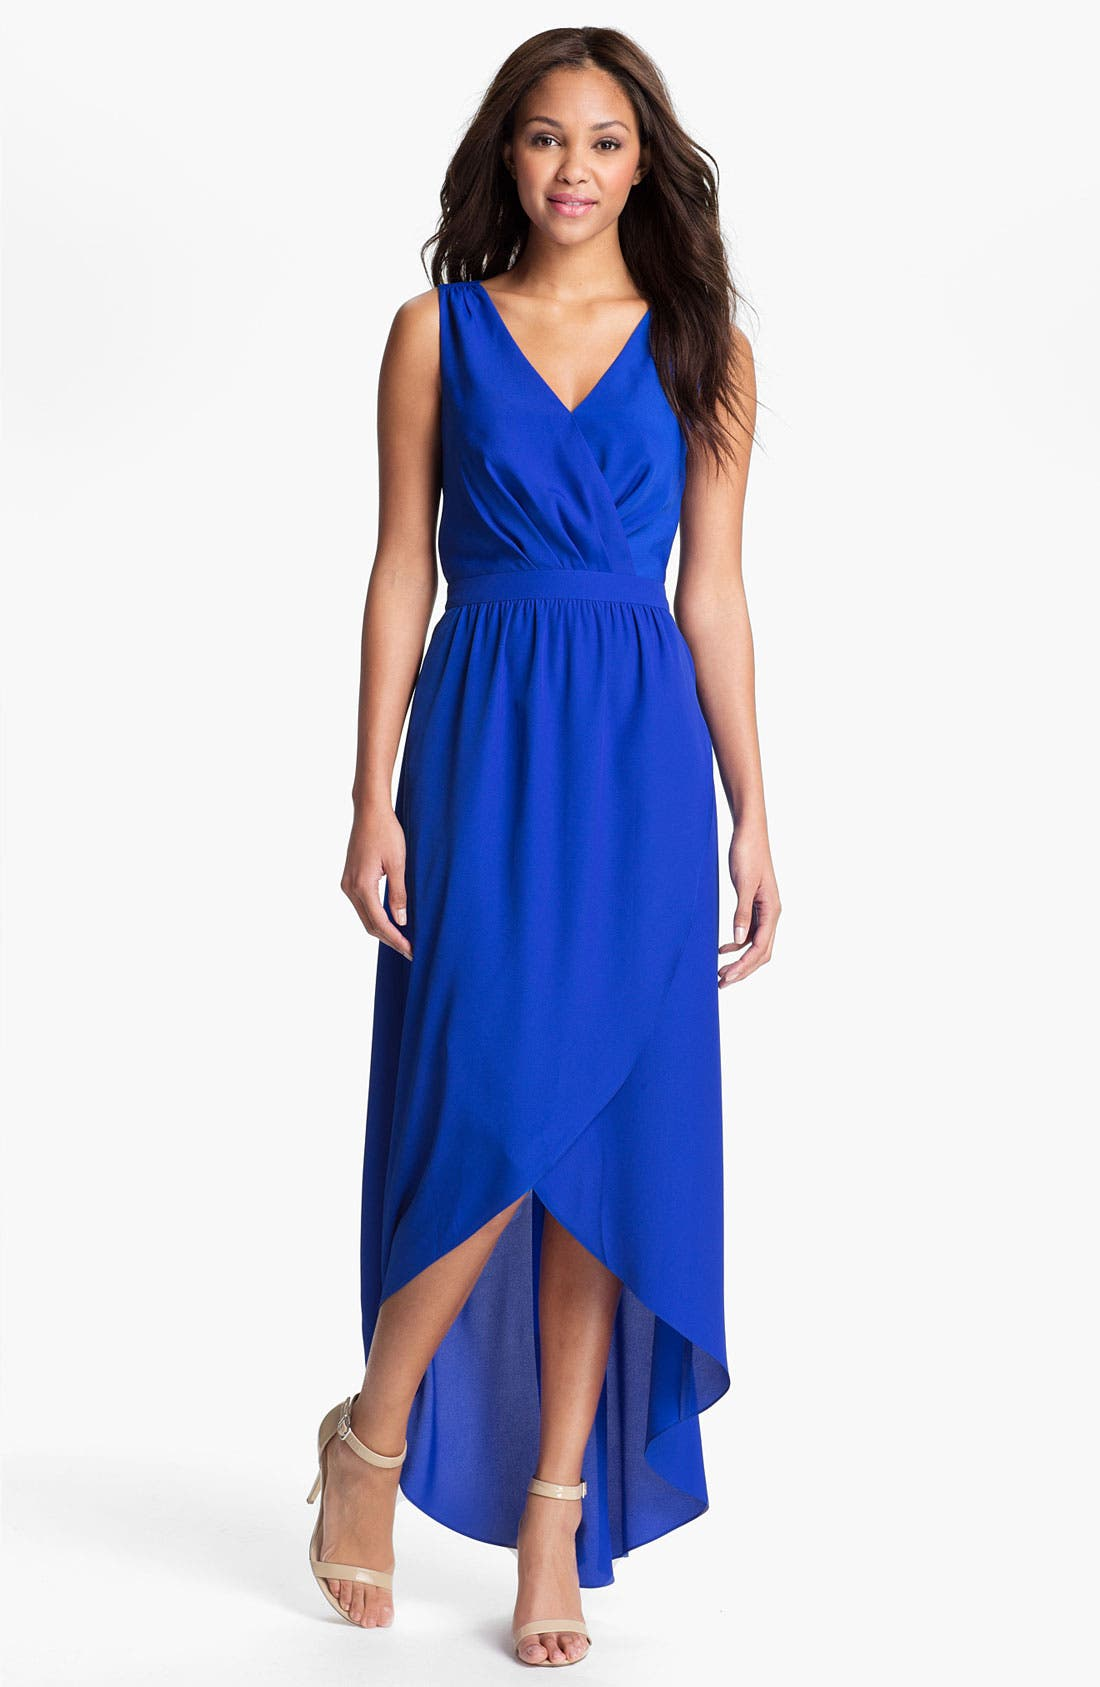 Alternate Image 1 Selected - Presley Skye Lace Up High/Low Maxi Dress